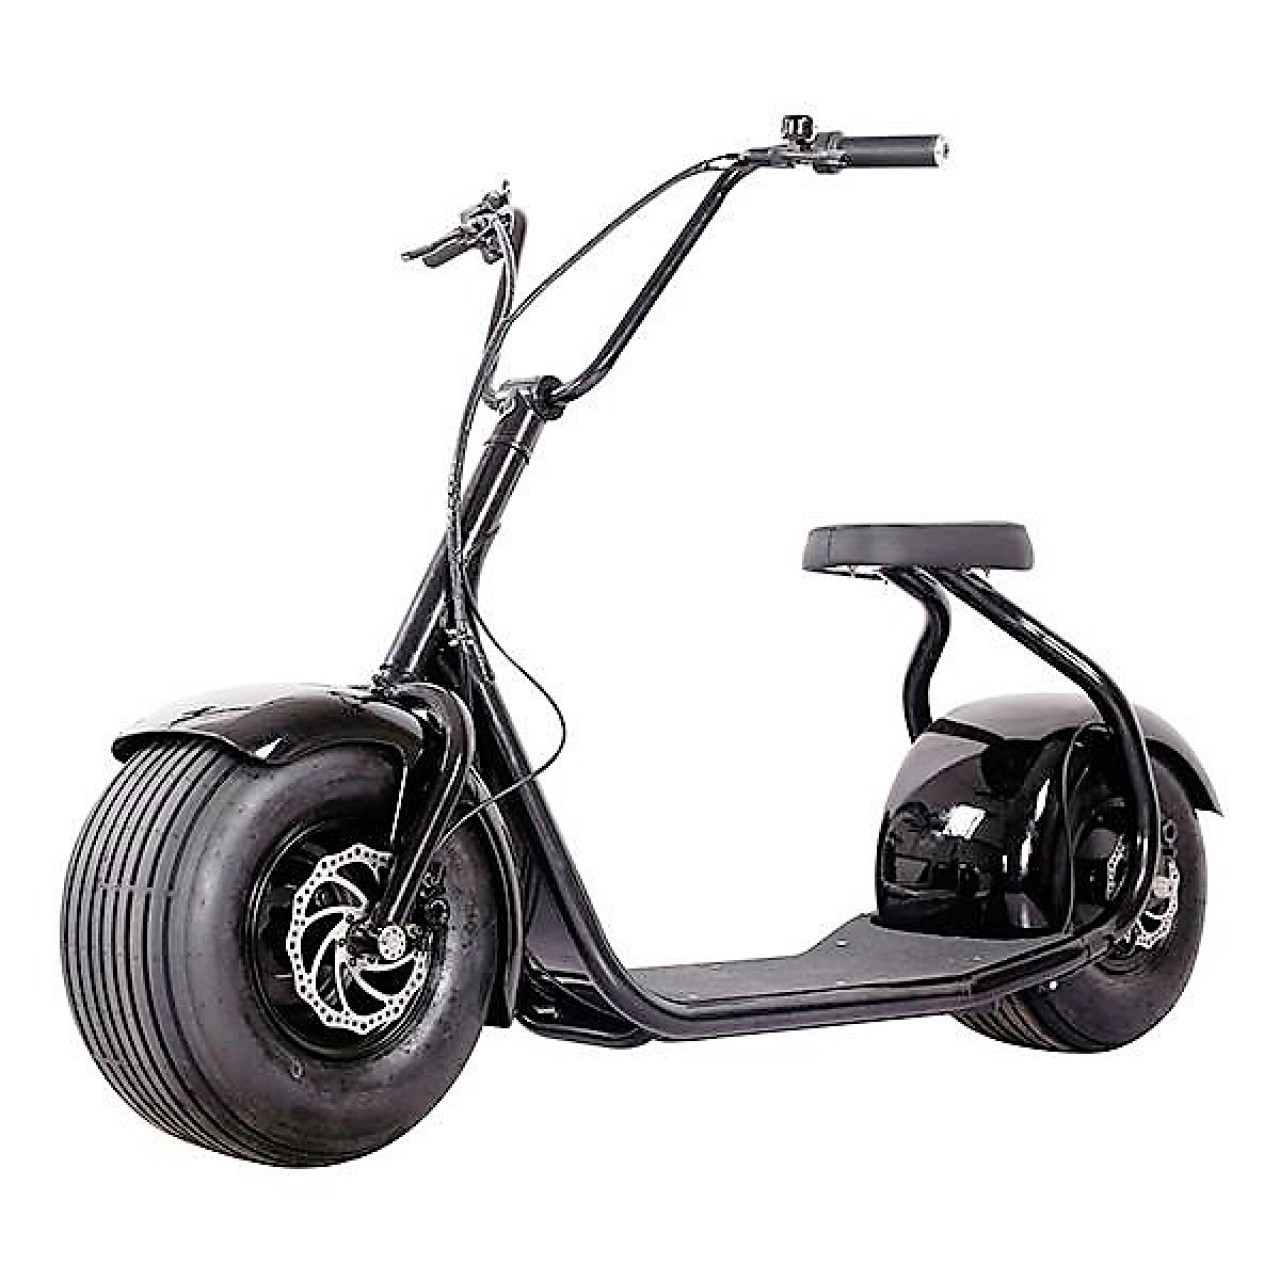 electric scooter harley hover dream 77 ood. Black Bedroom Furniture Sets. Home Design Ideas